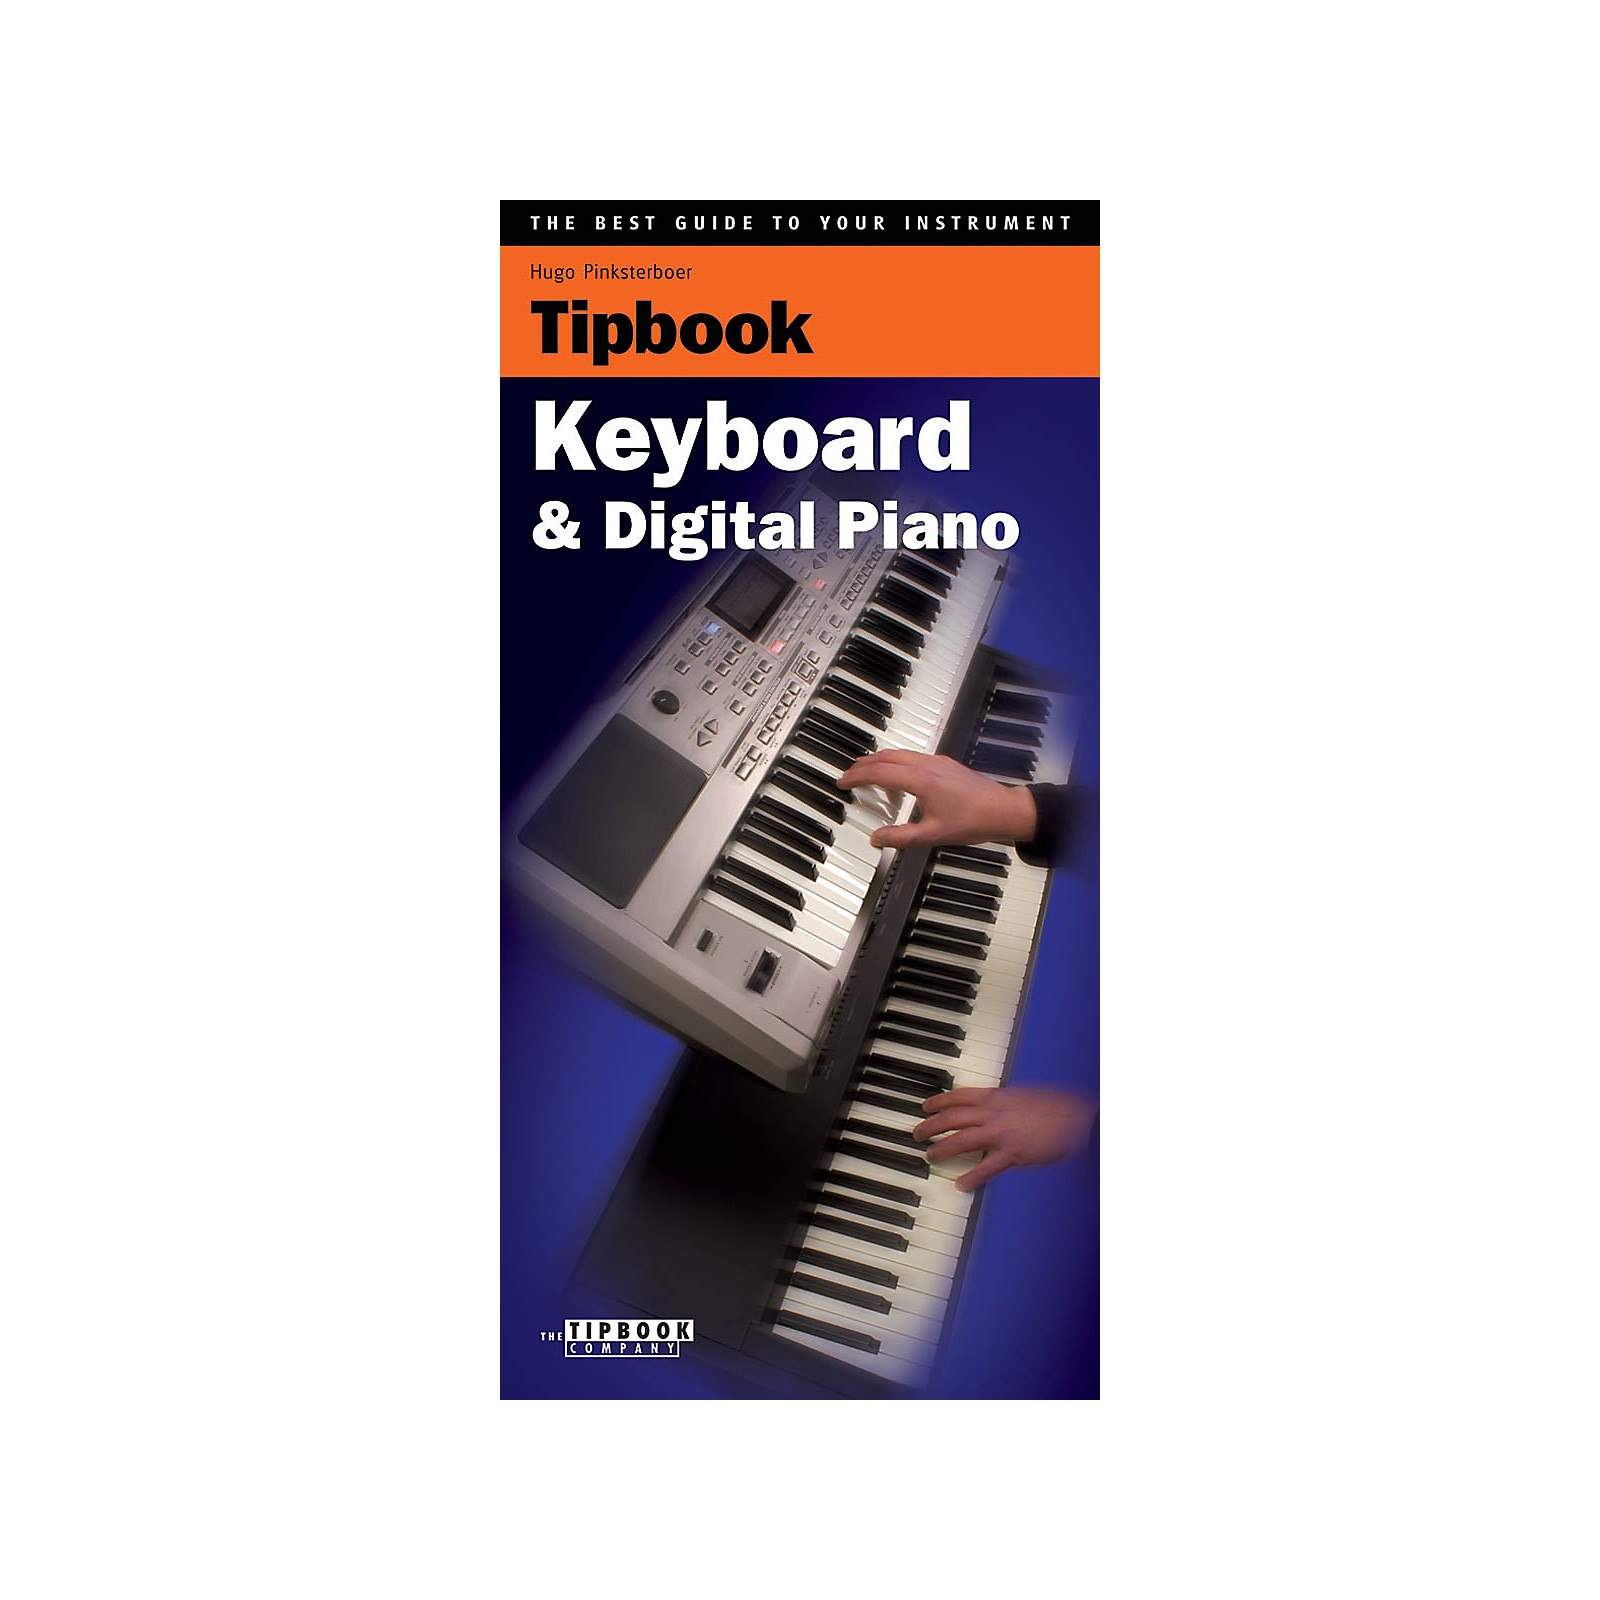 The Tipbook Company Tipboook - Keyboard & Digital Piano Book Series Softcover Written by Hugo Pinksterboer